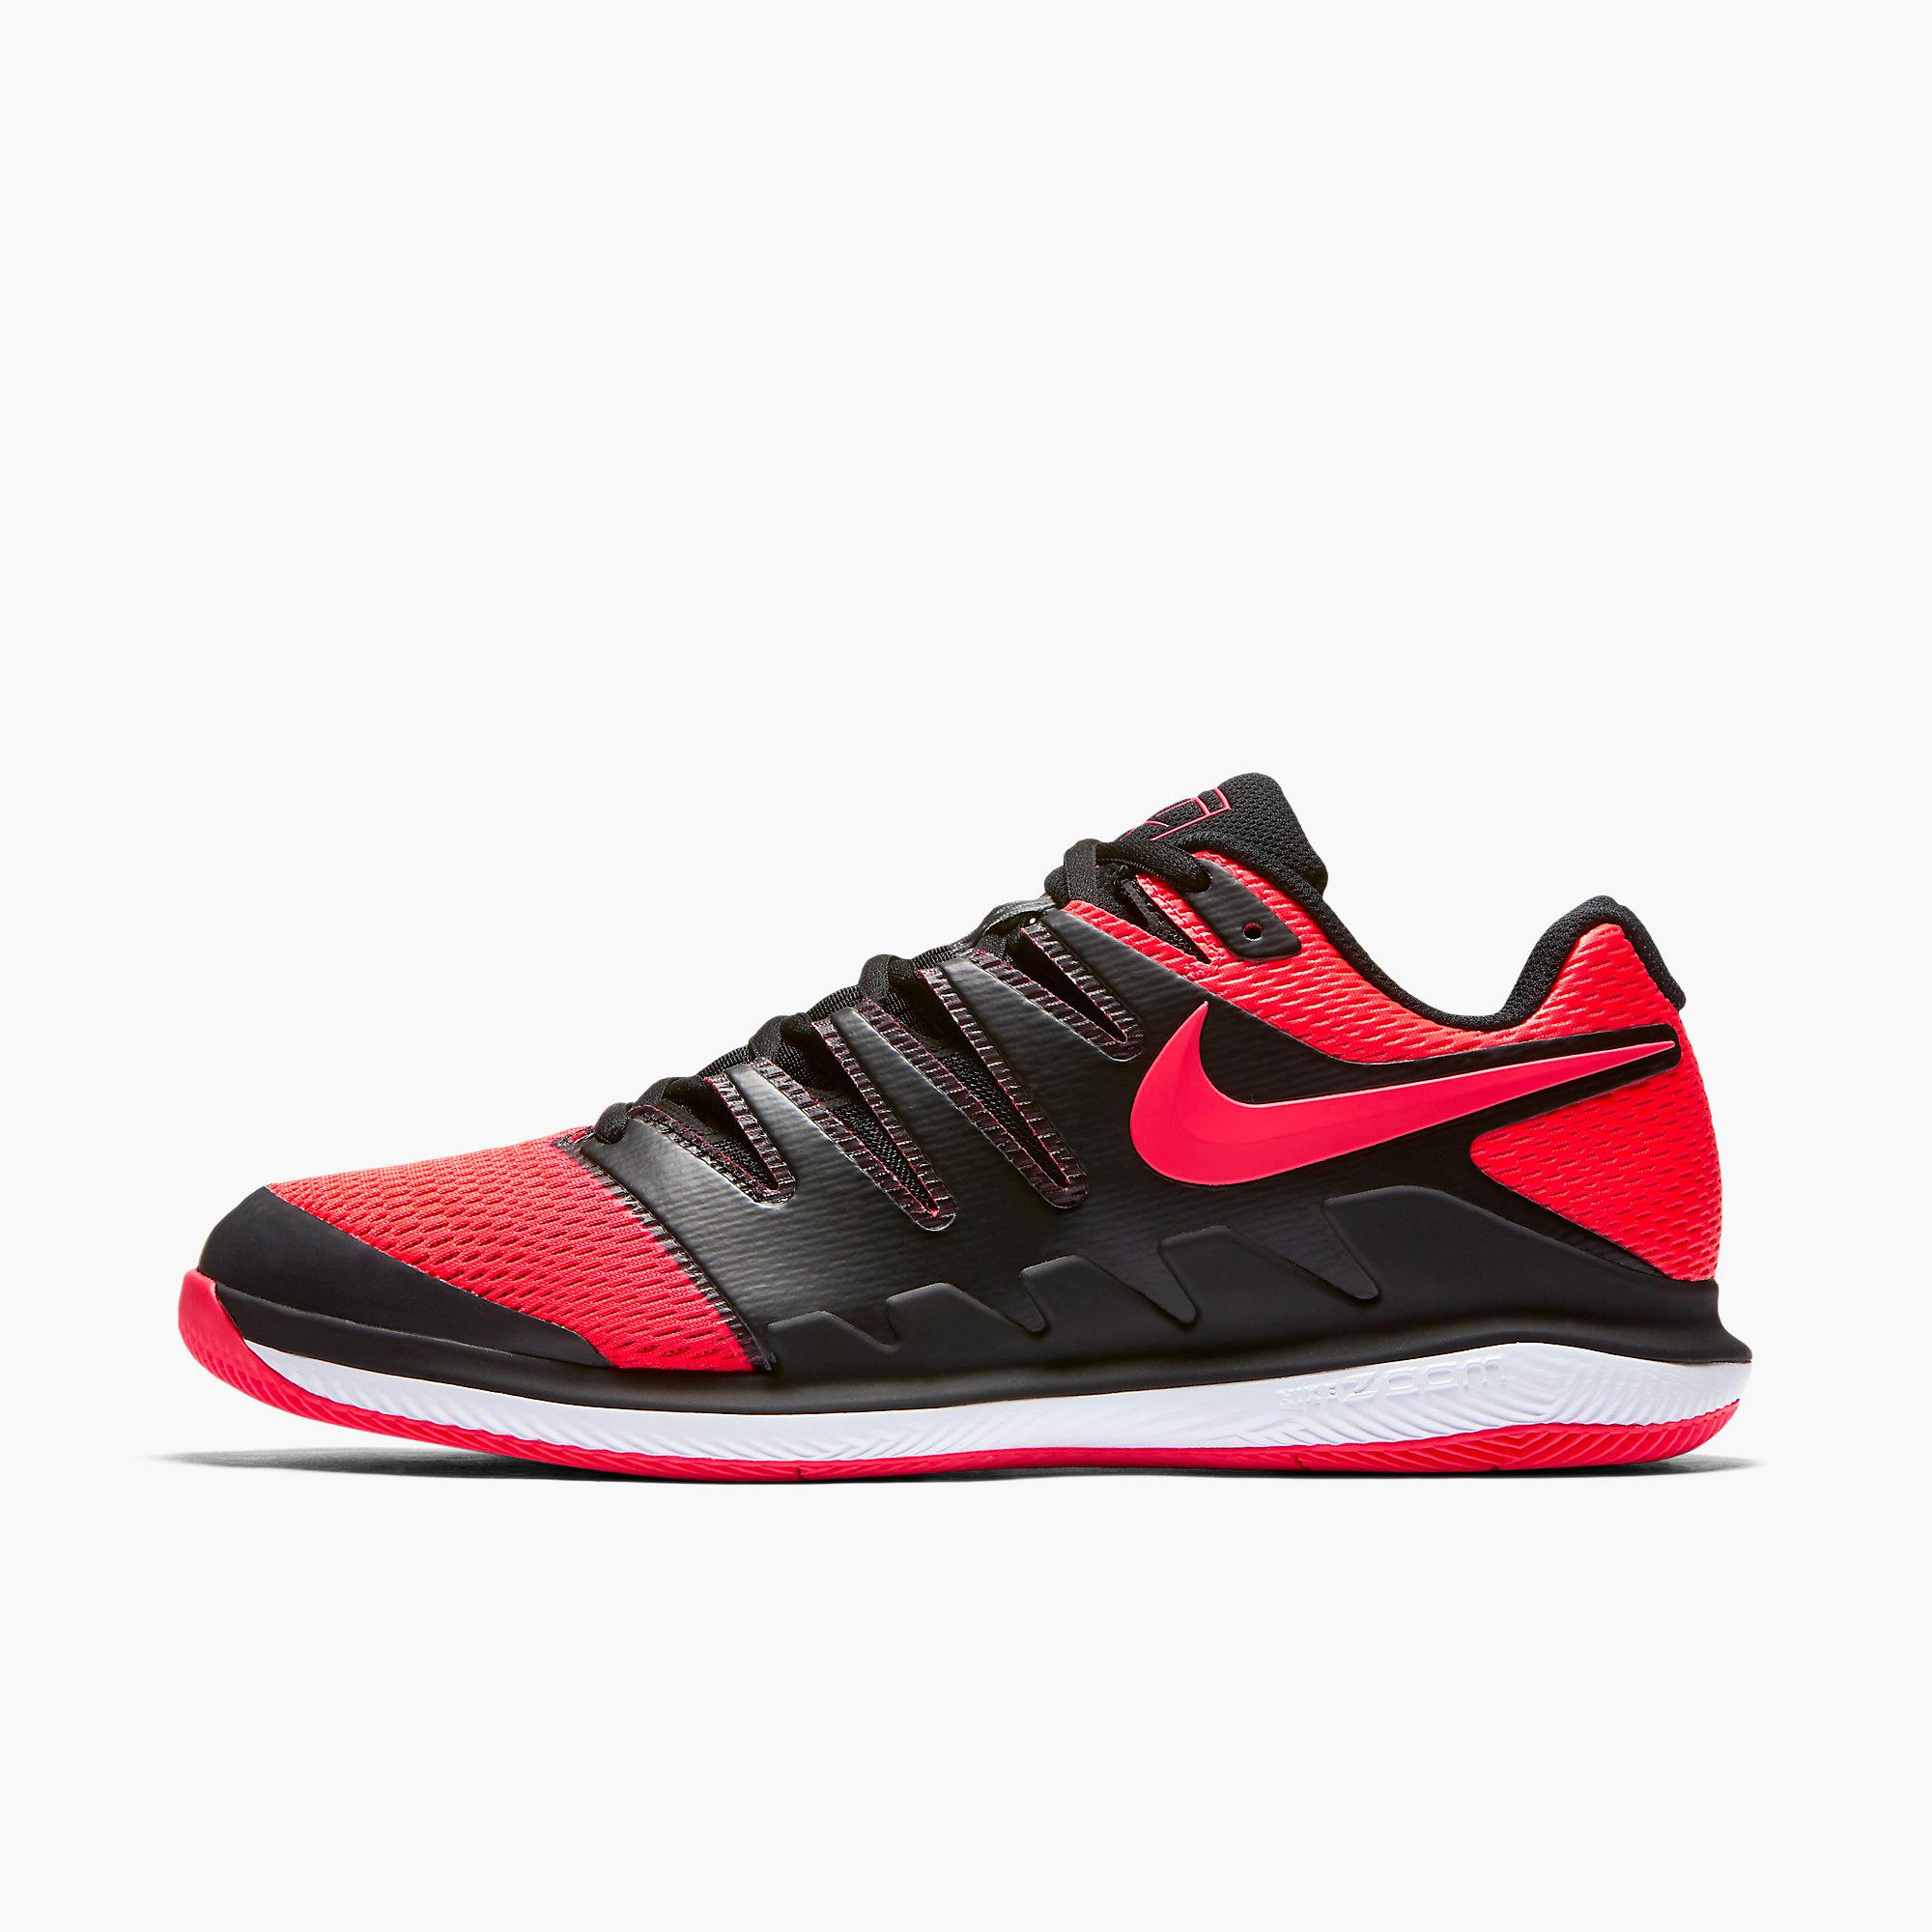 bcde1dd45360 Nike Mens Air Zoom Vapor X Tennis Shoes - Black Red - Tennisnuts.com